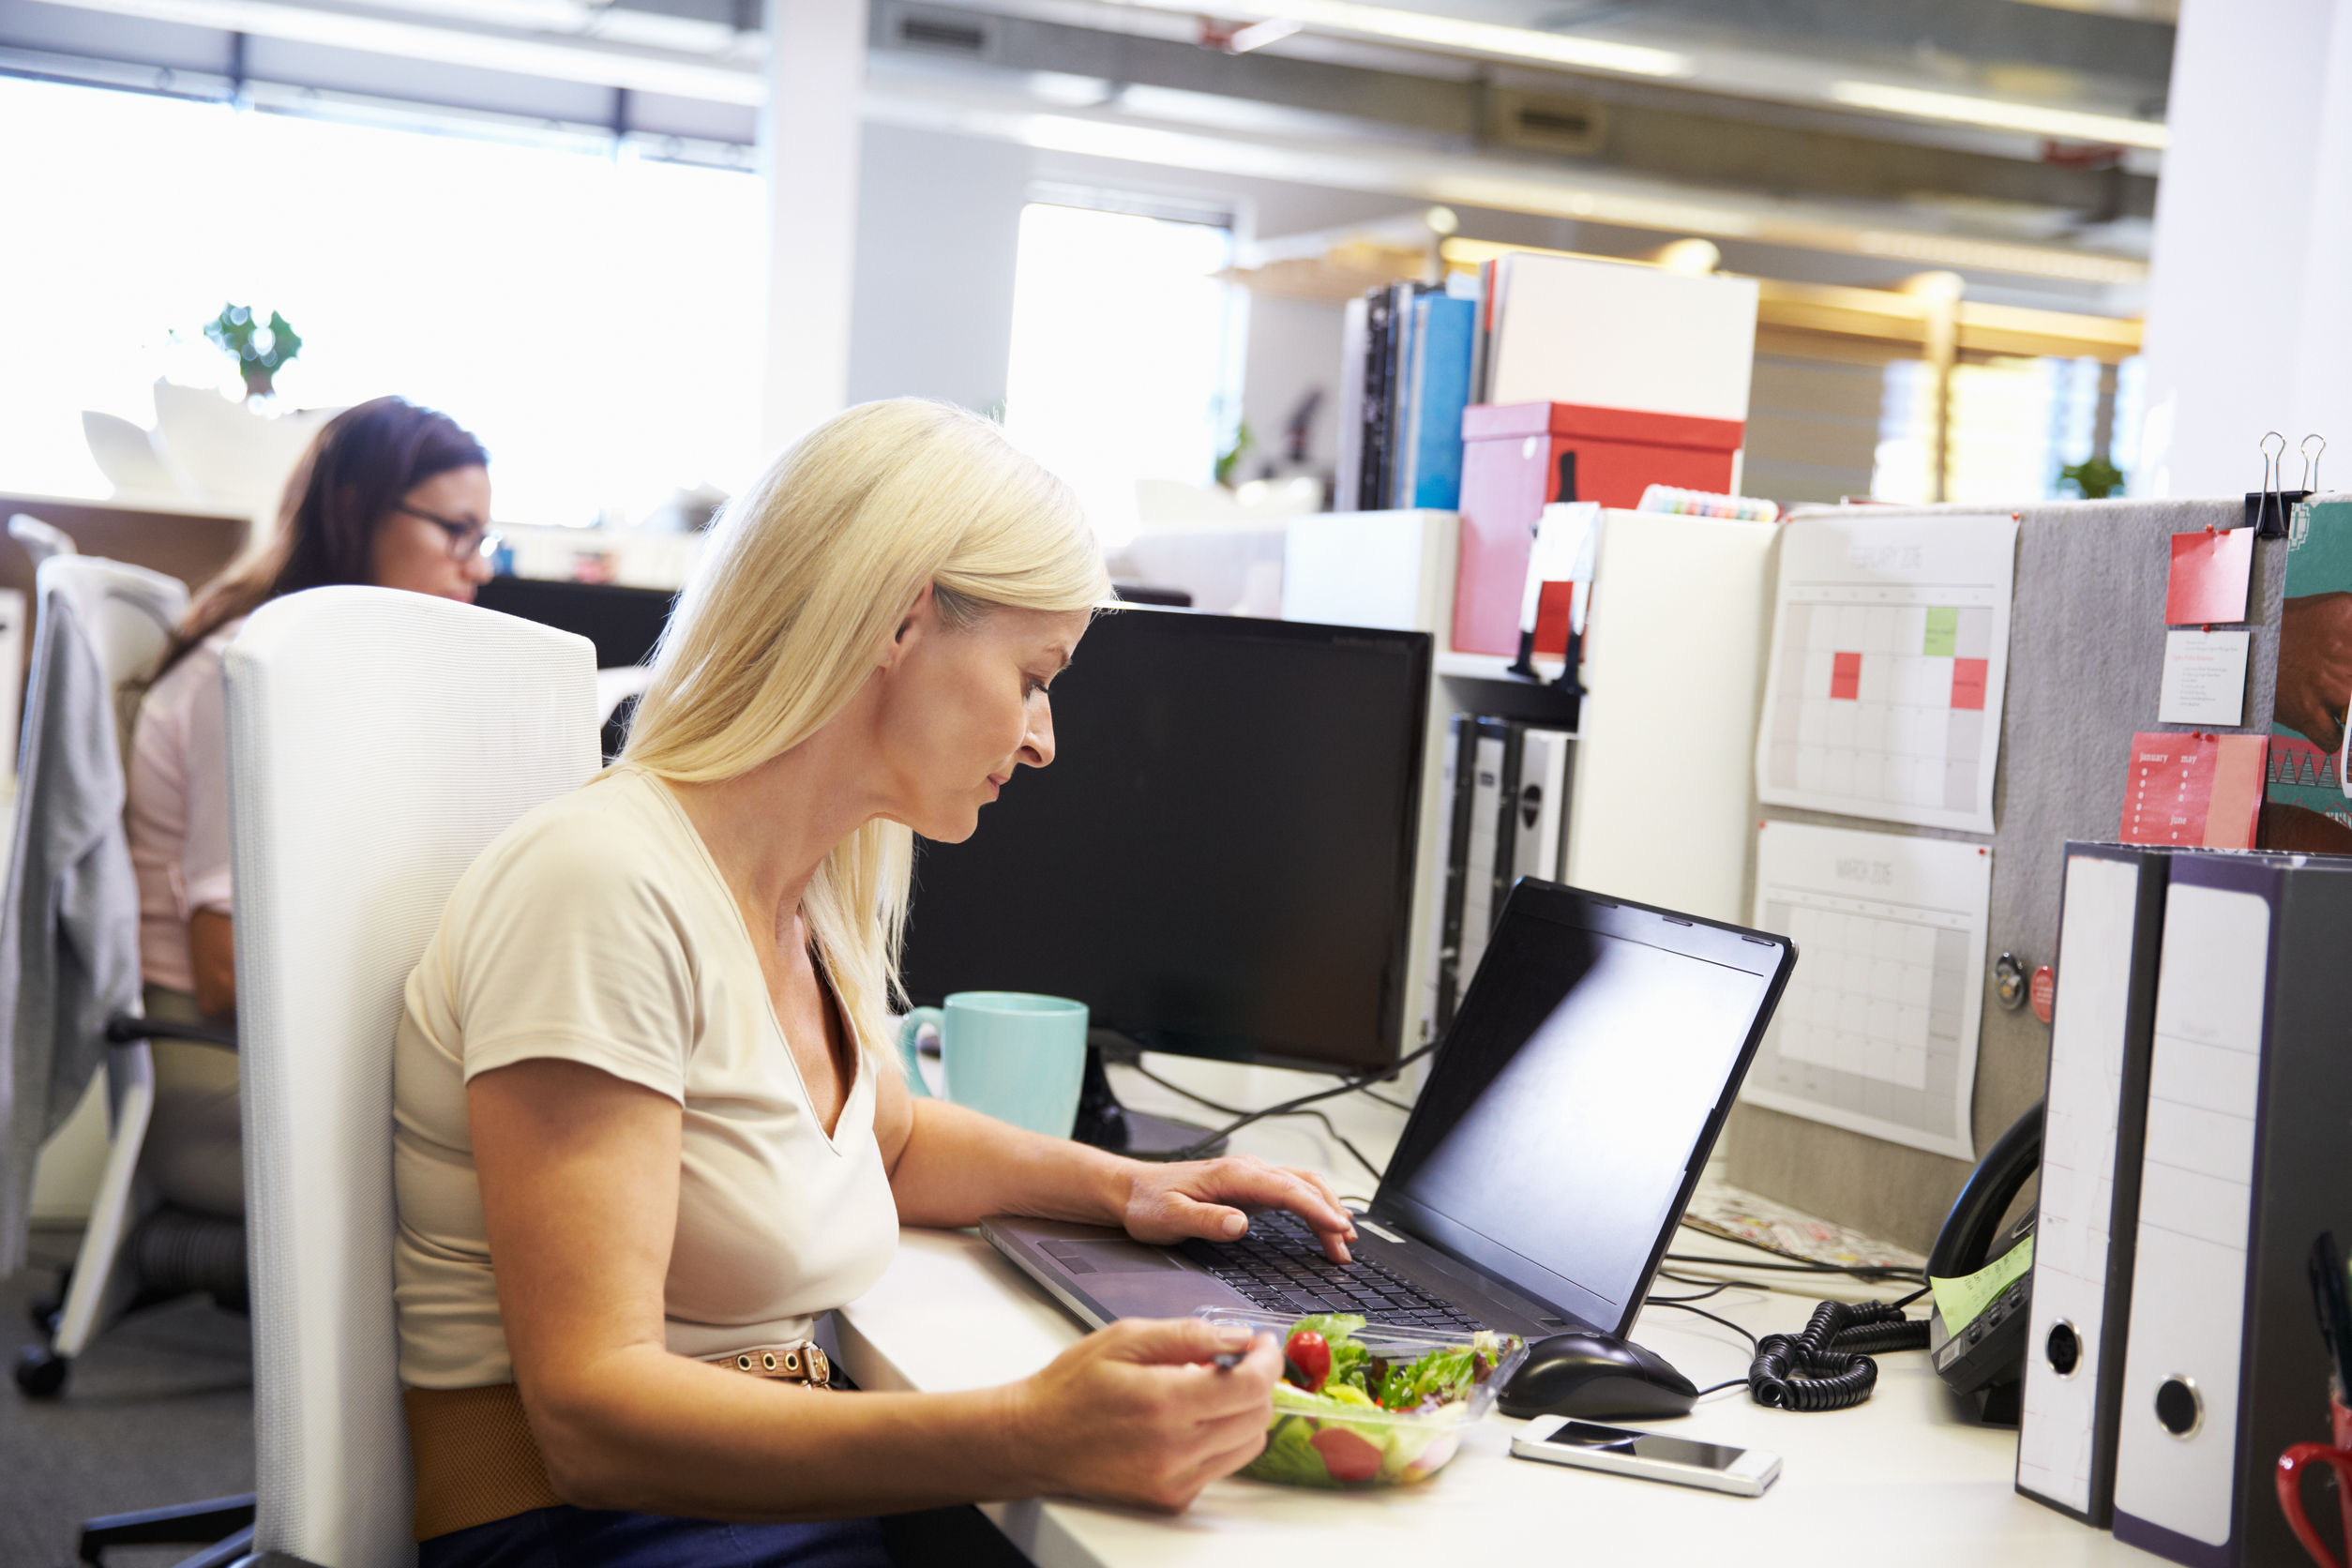 41402284 - a working woman eating lunch at her desk